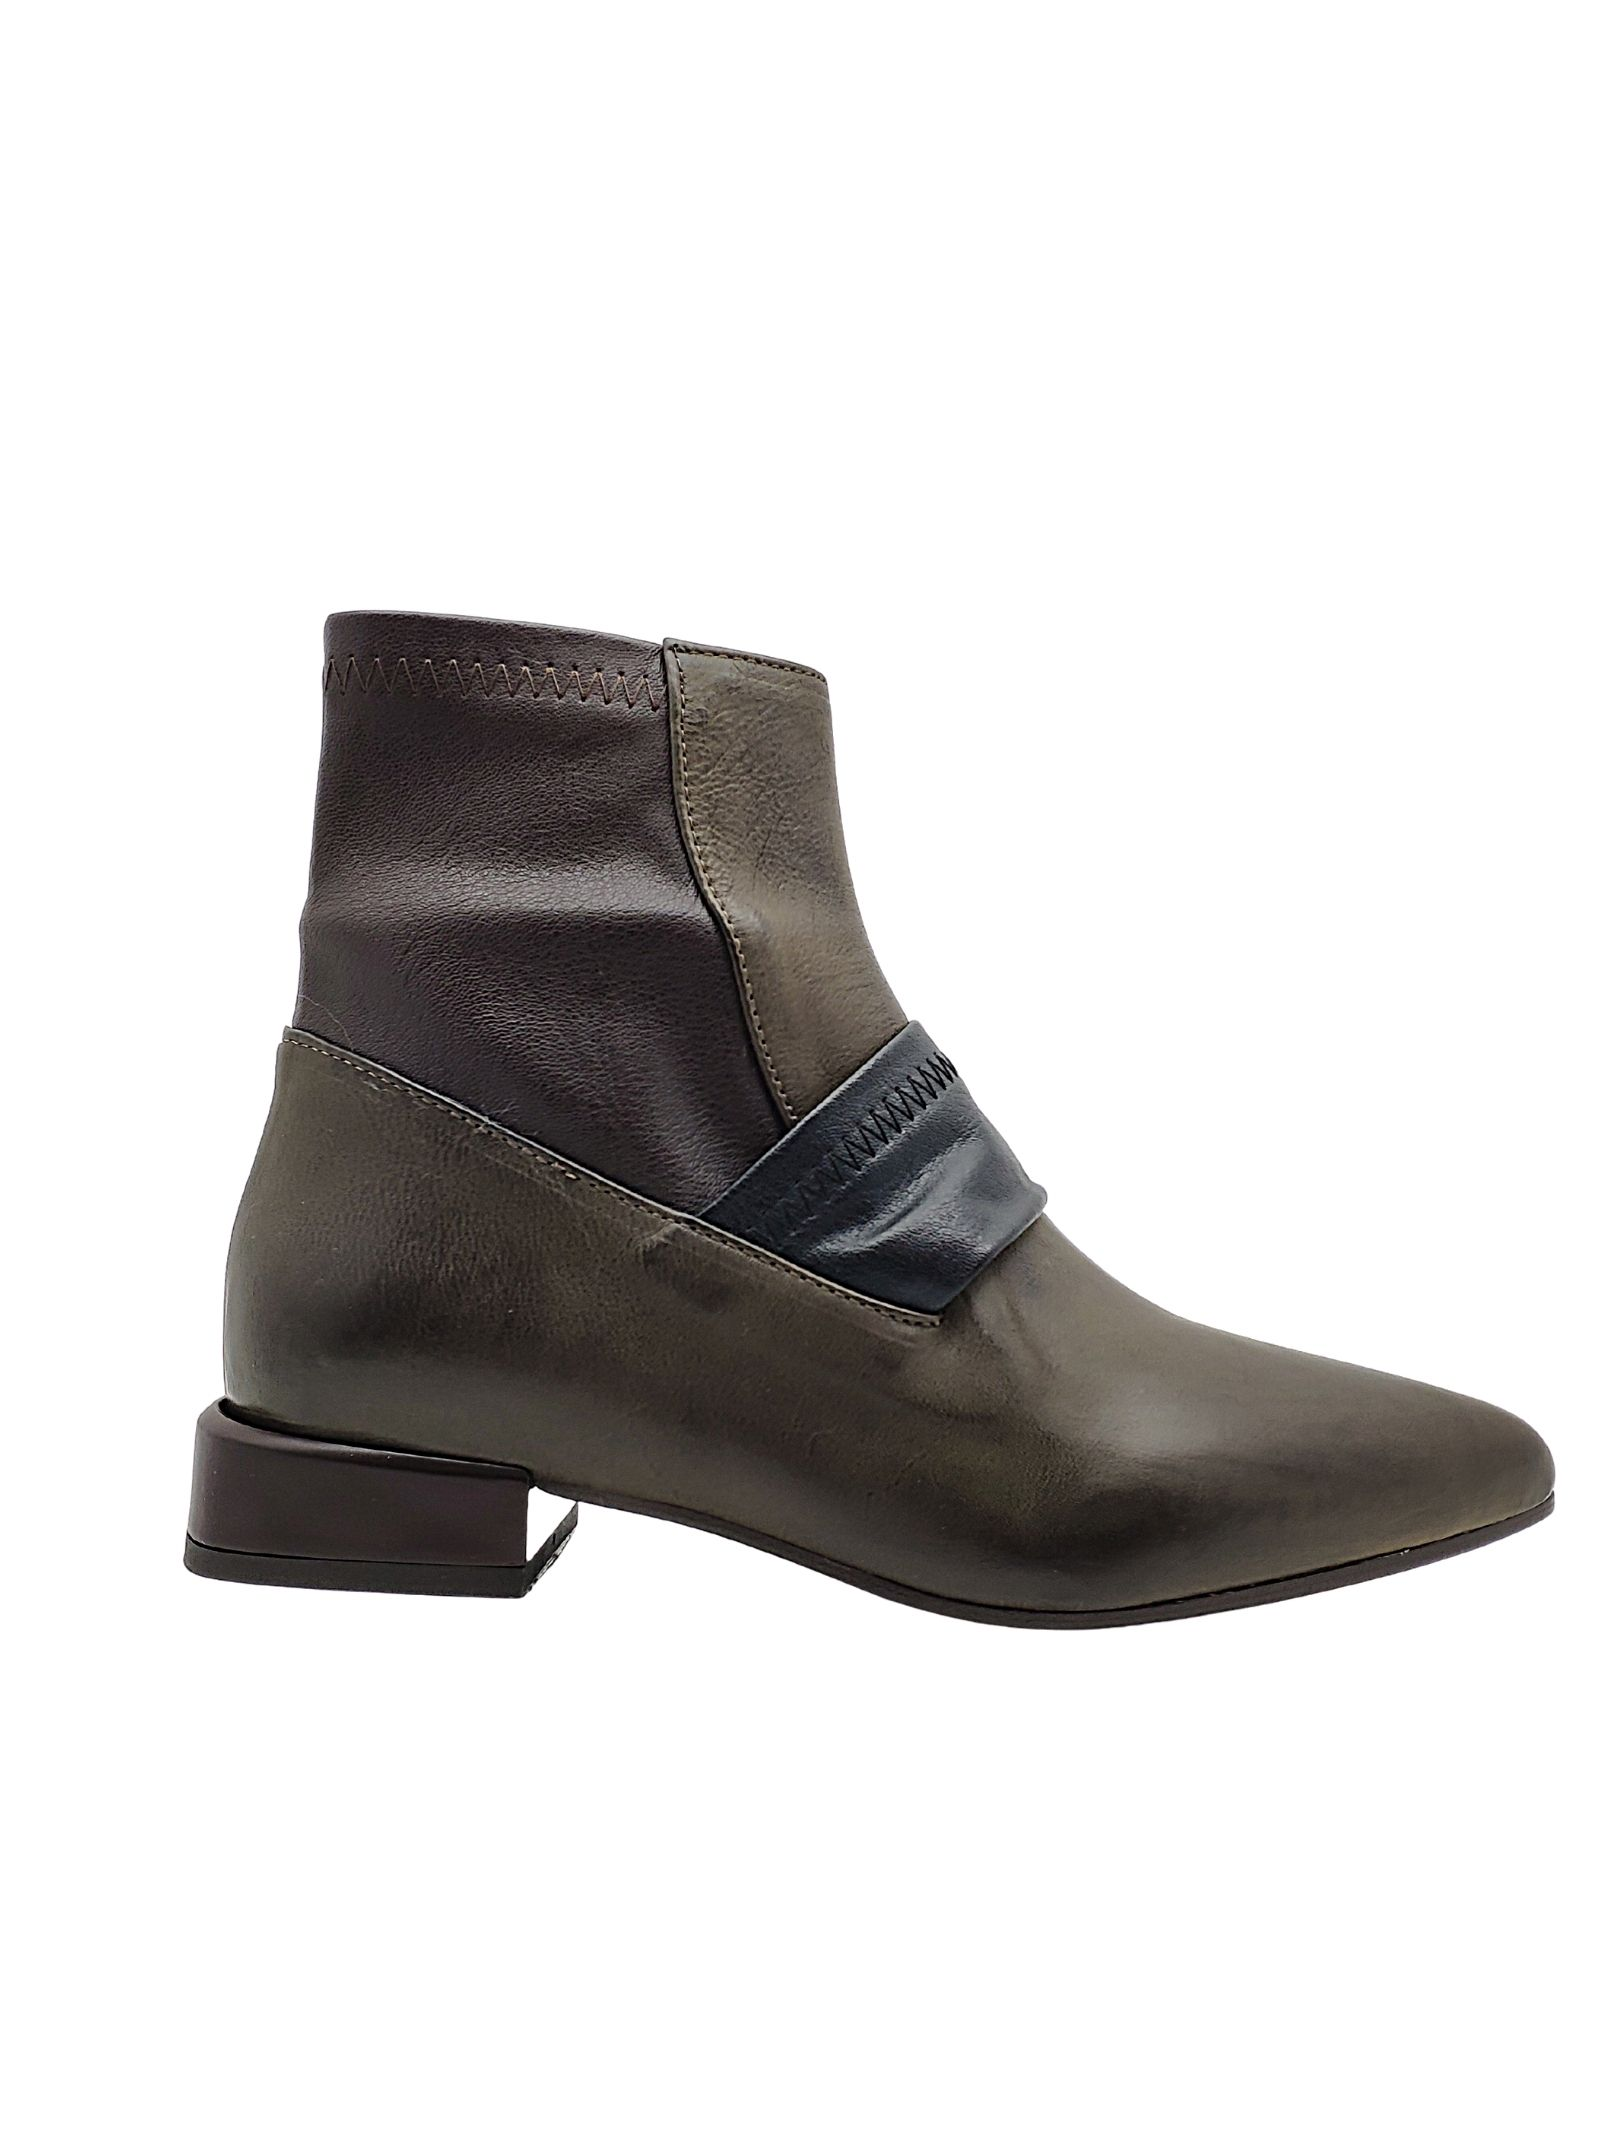 Women's pointed ankle boots Salvador Ribes | Ankle Boots | CALIFORNIA4BOSCO